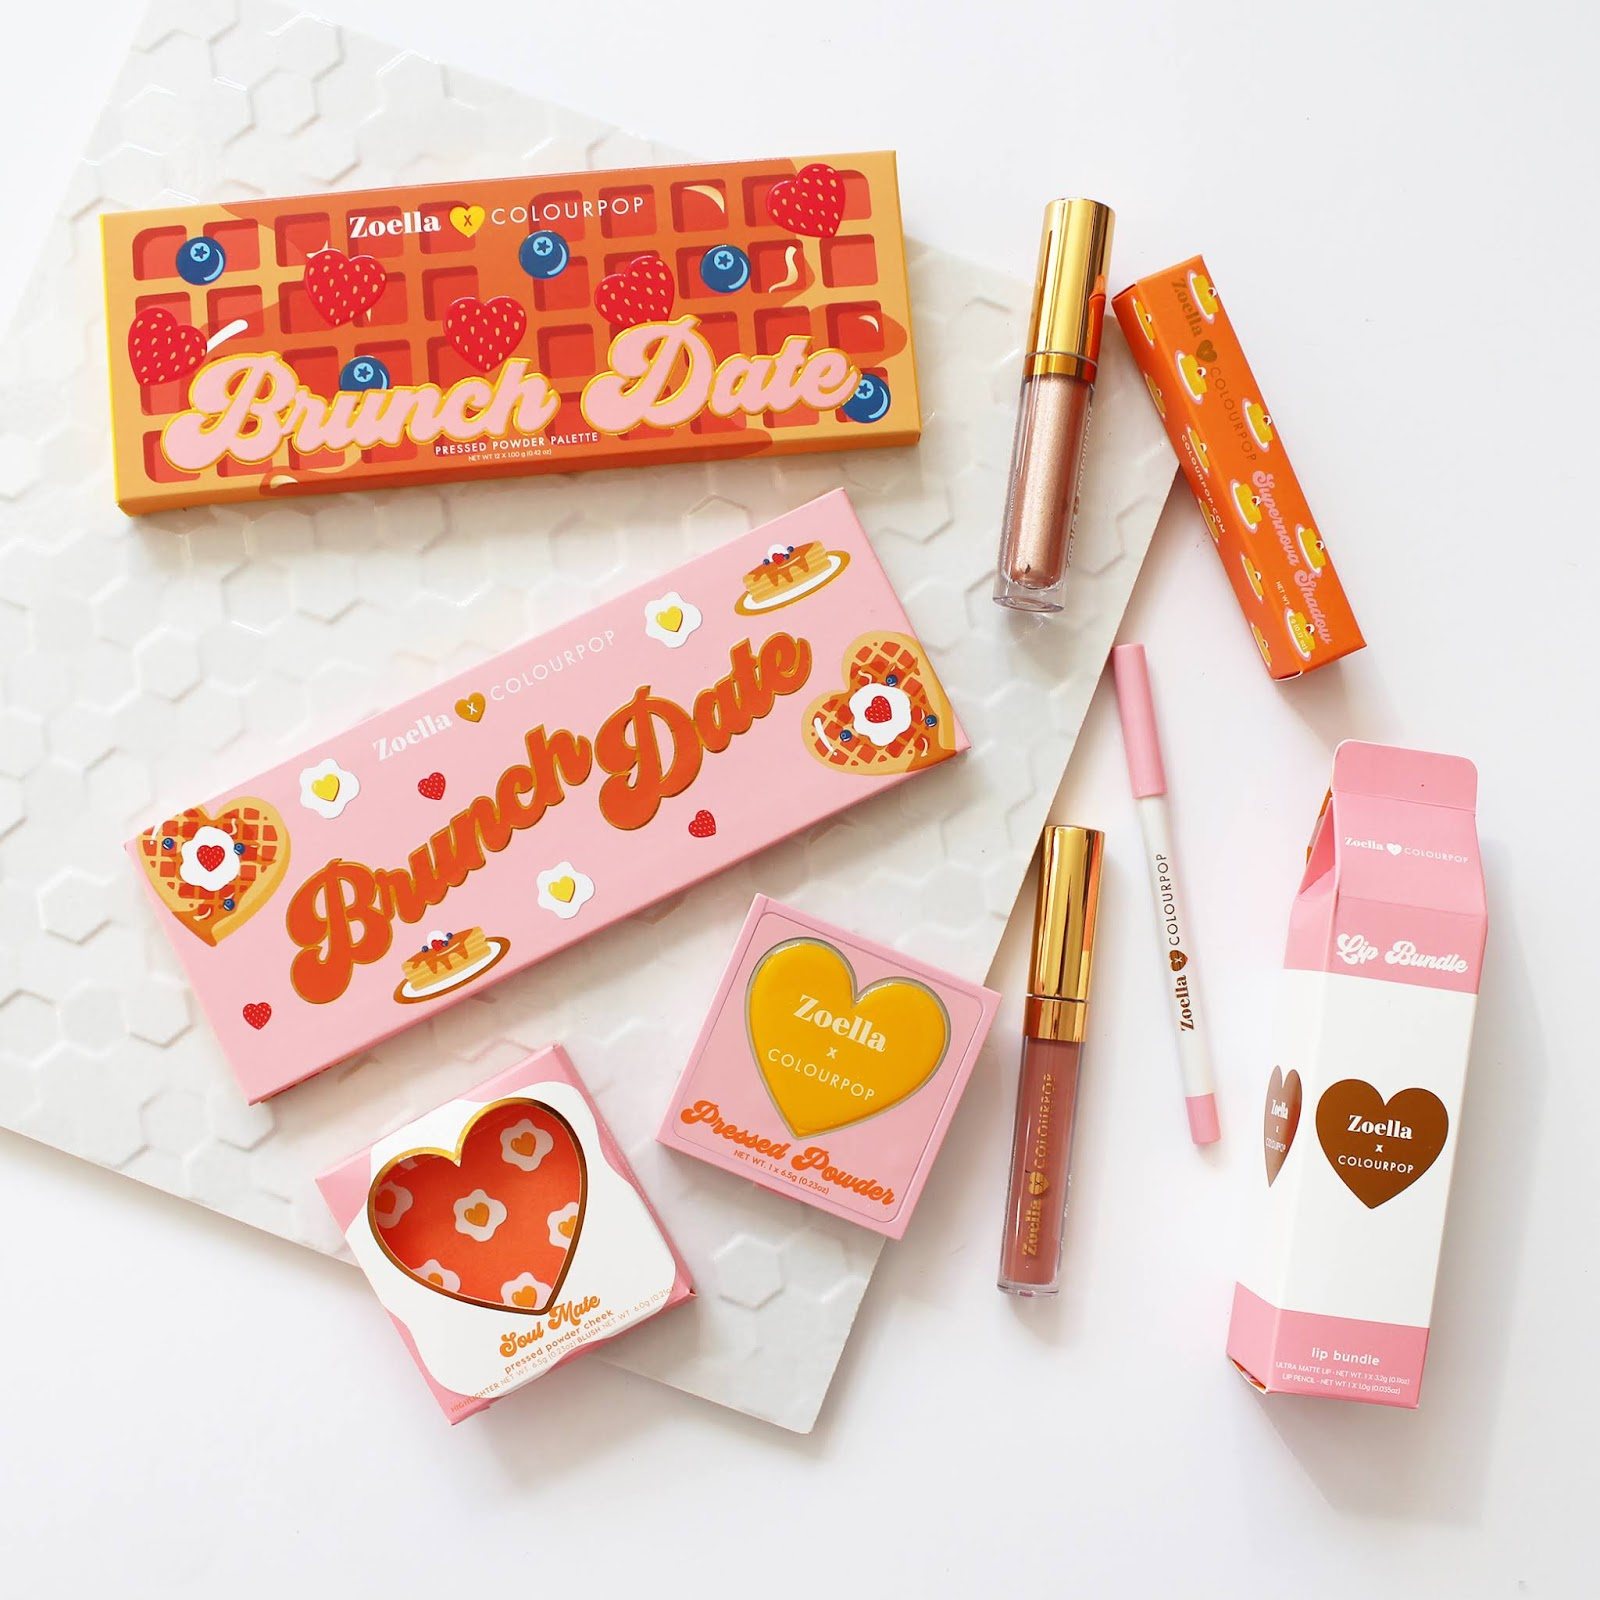 COLOURPOP | Zoella Collaboration Haul + Swatches - CassandraMyee